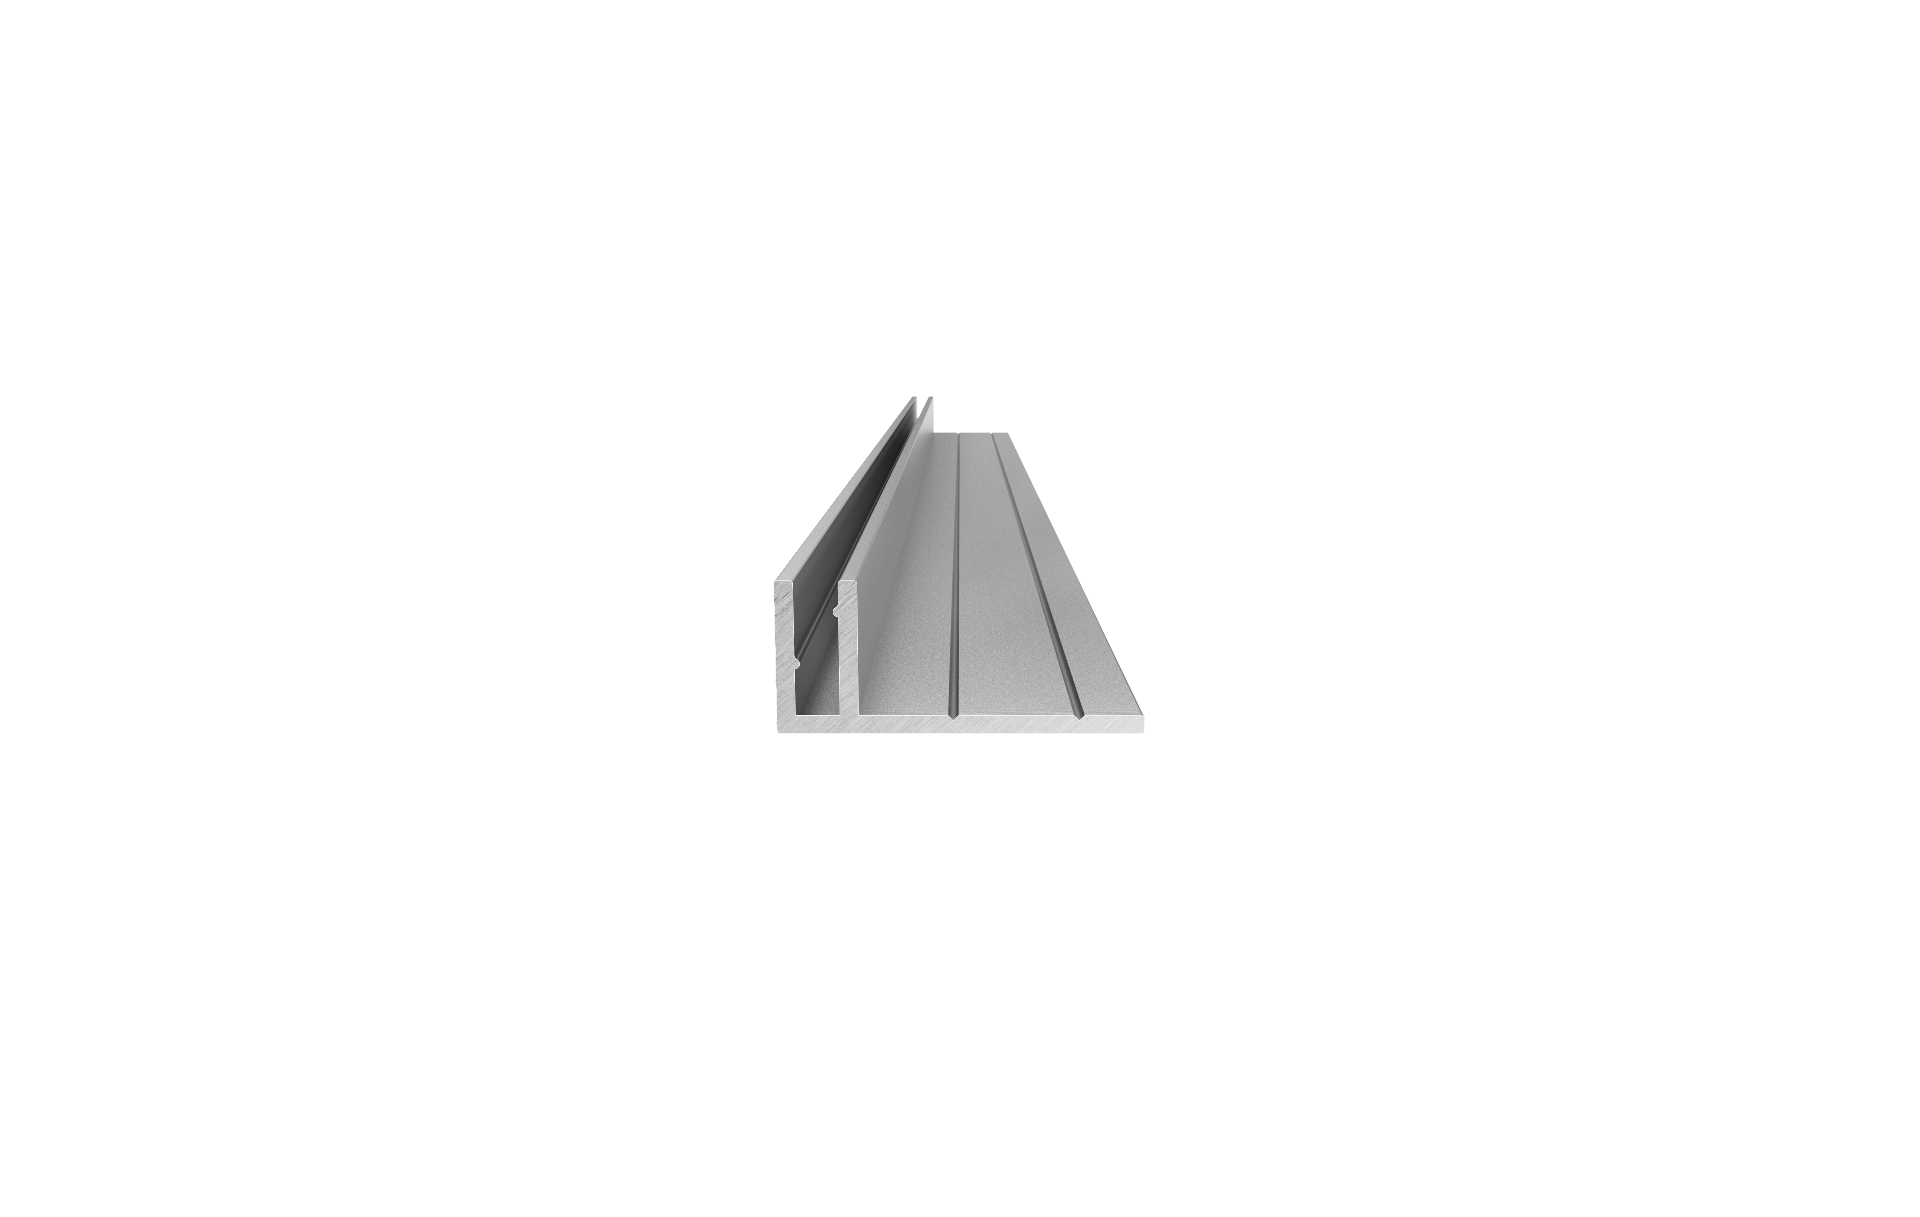 Profile 14 - Single SidedVisible edge 15mm#FR-14